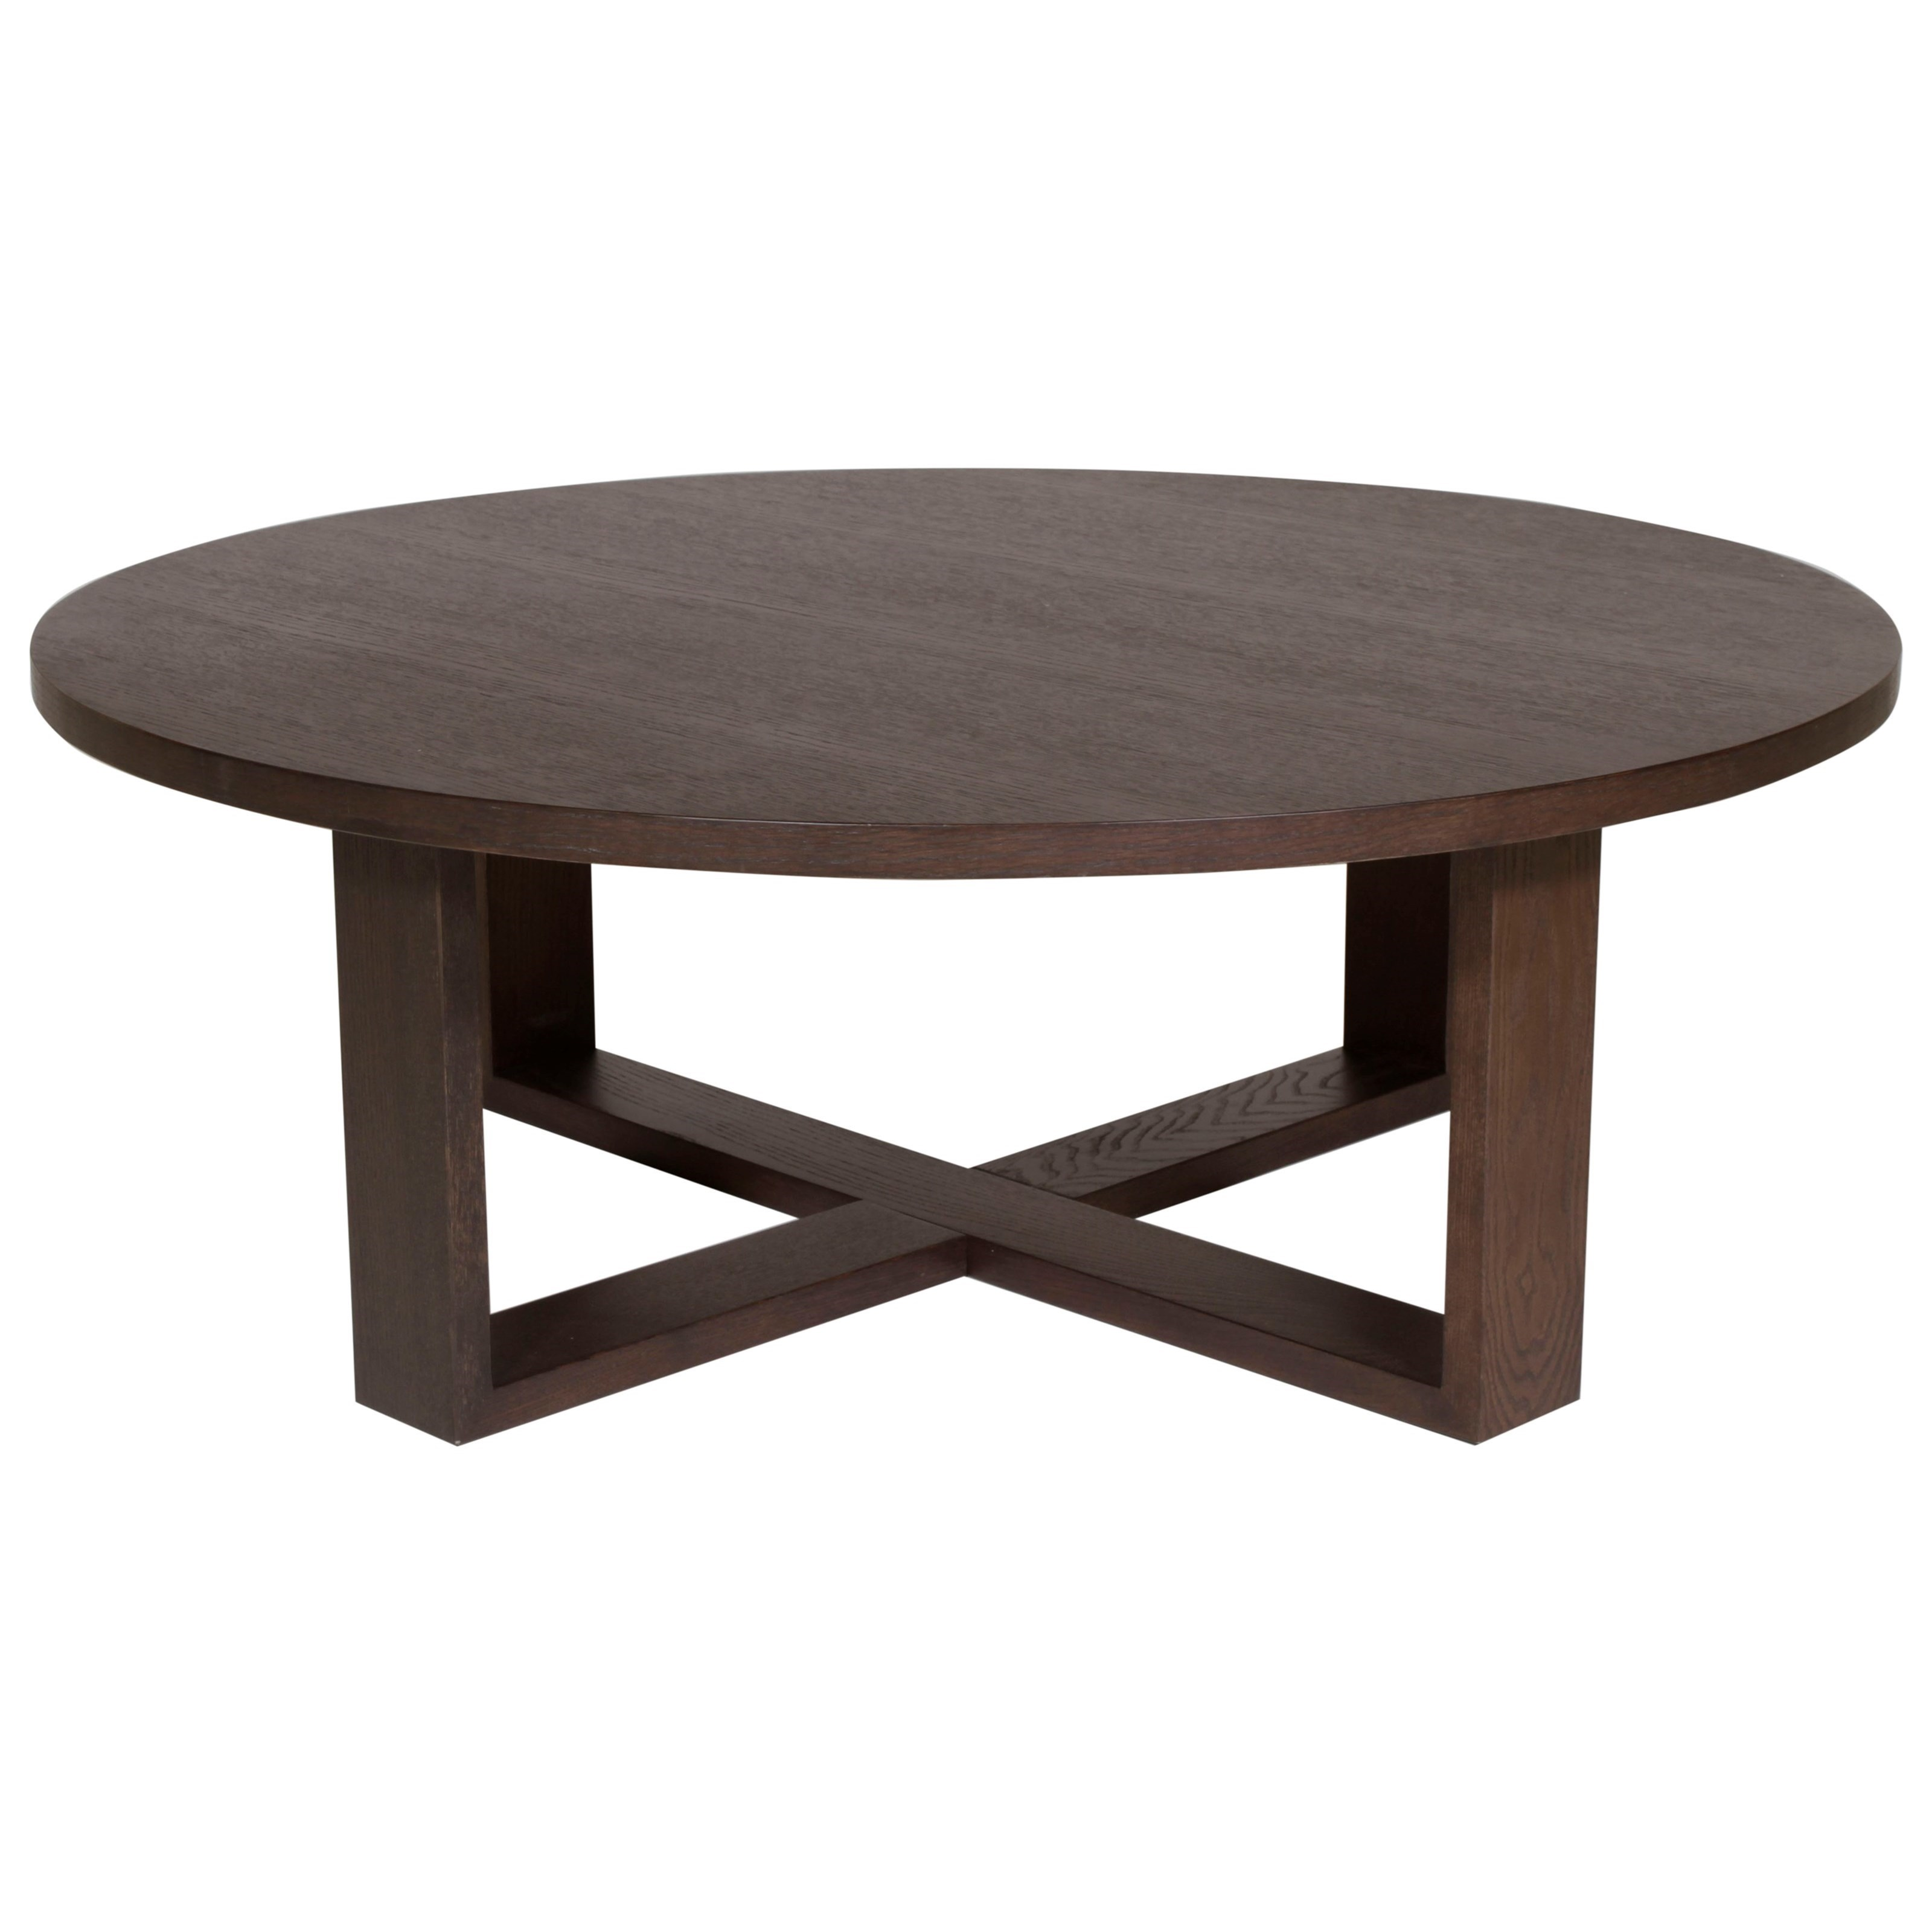 Round Central Table